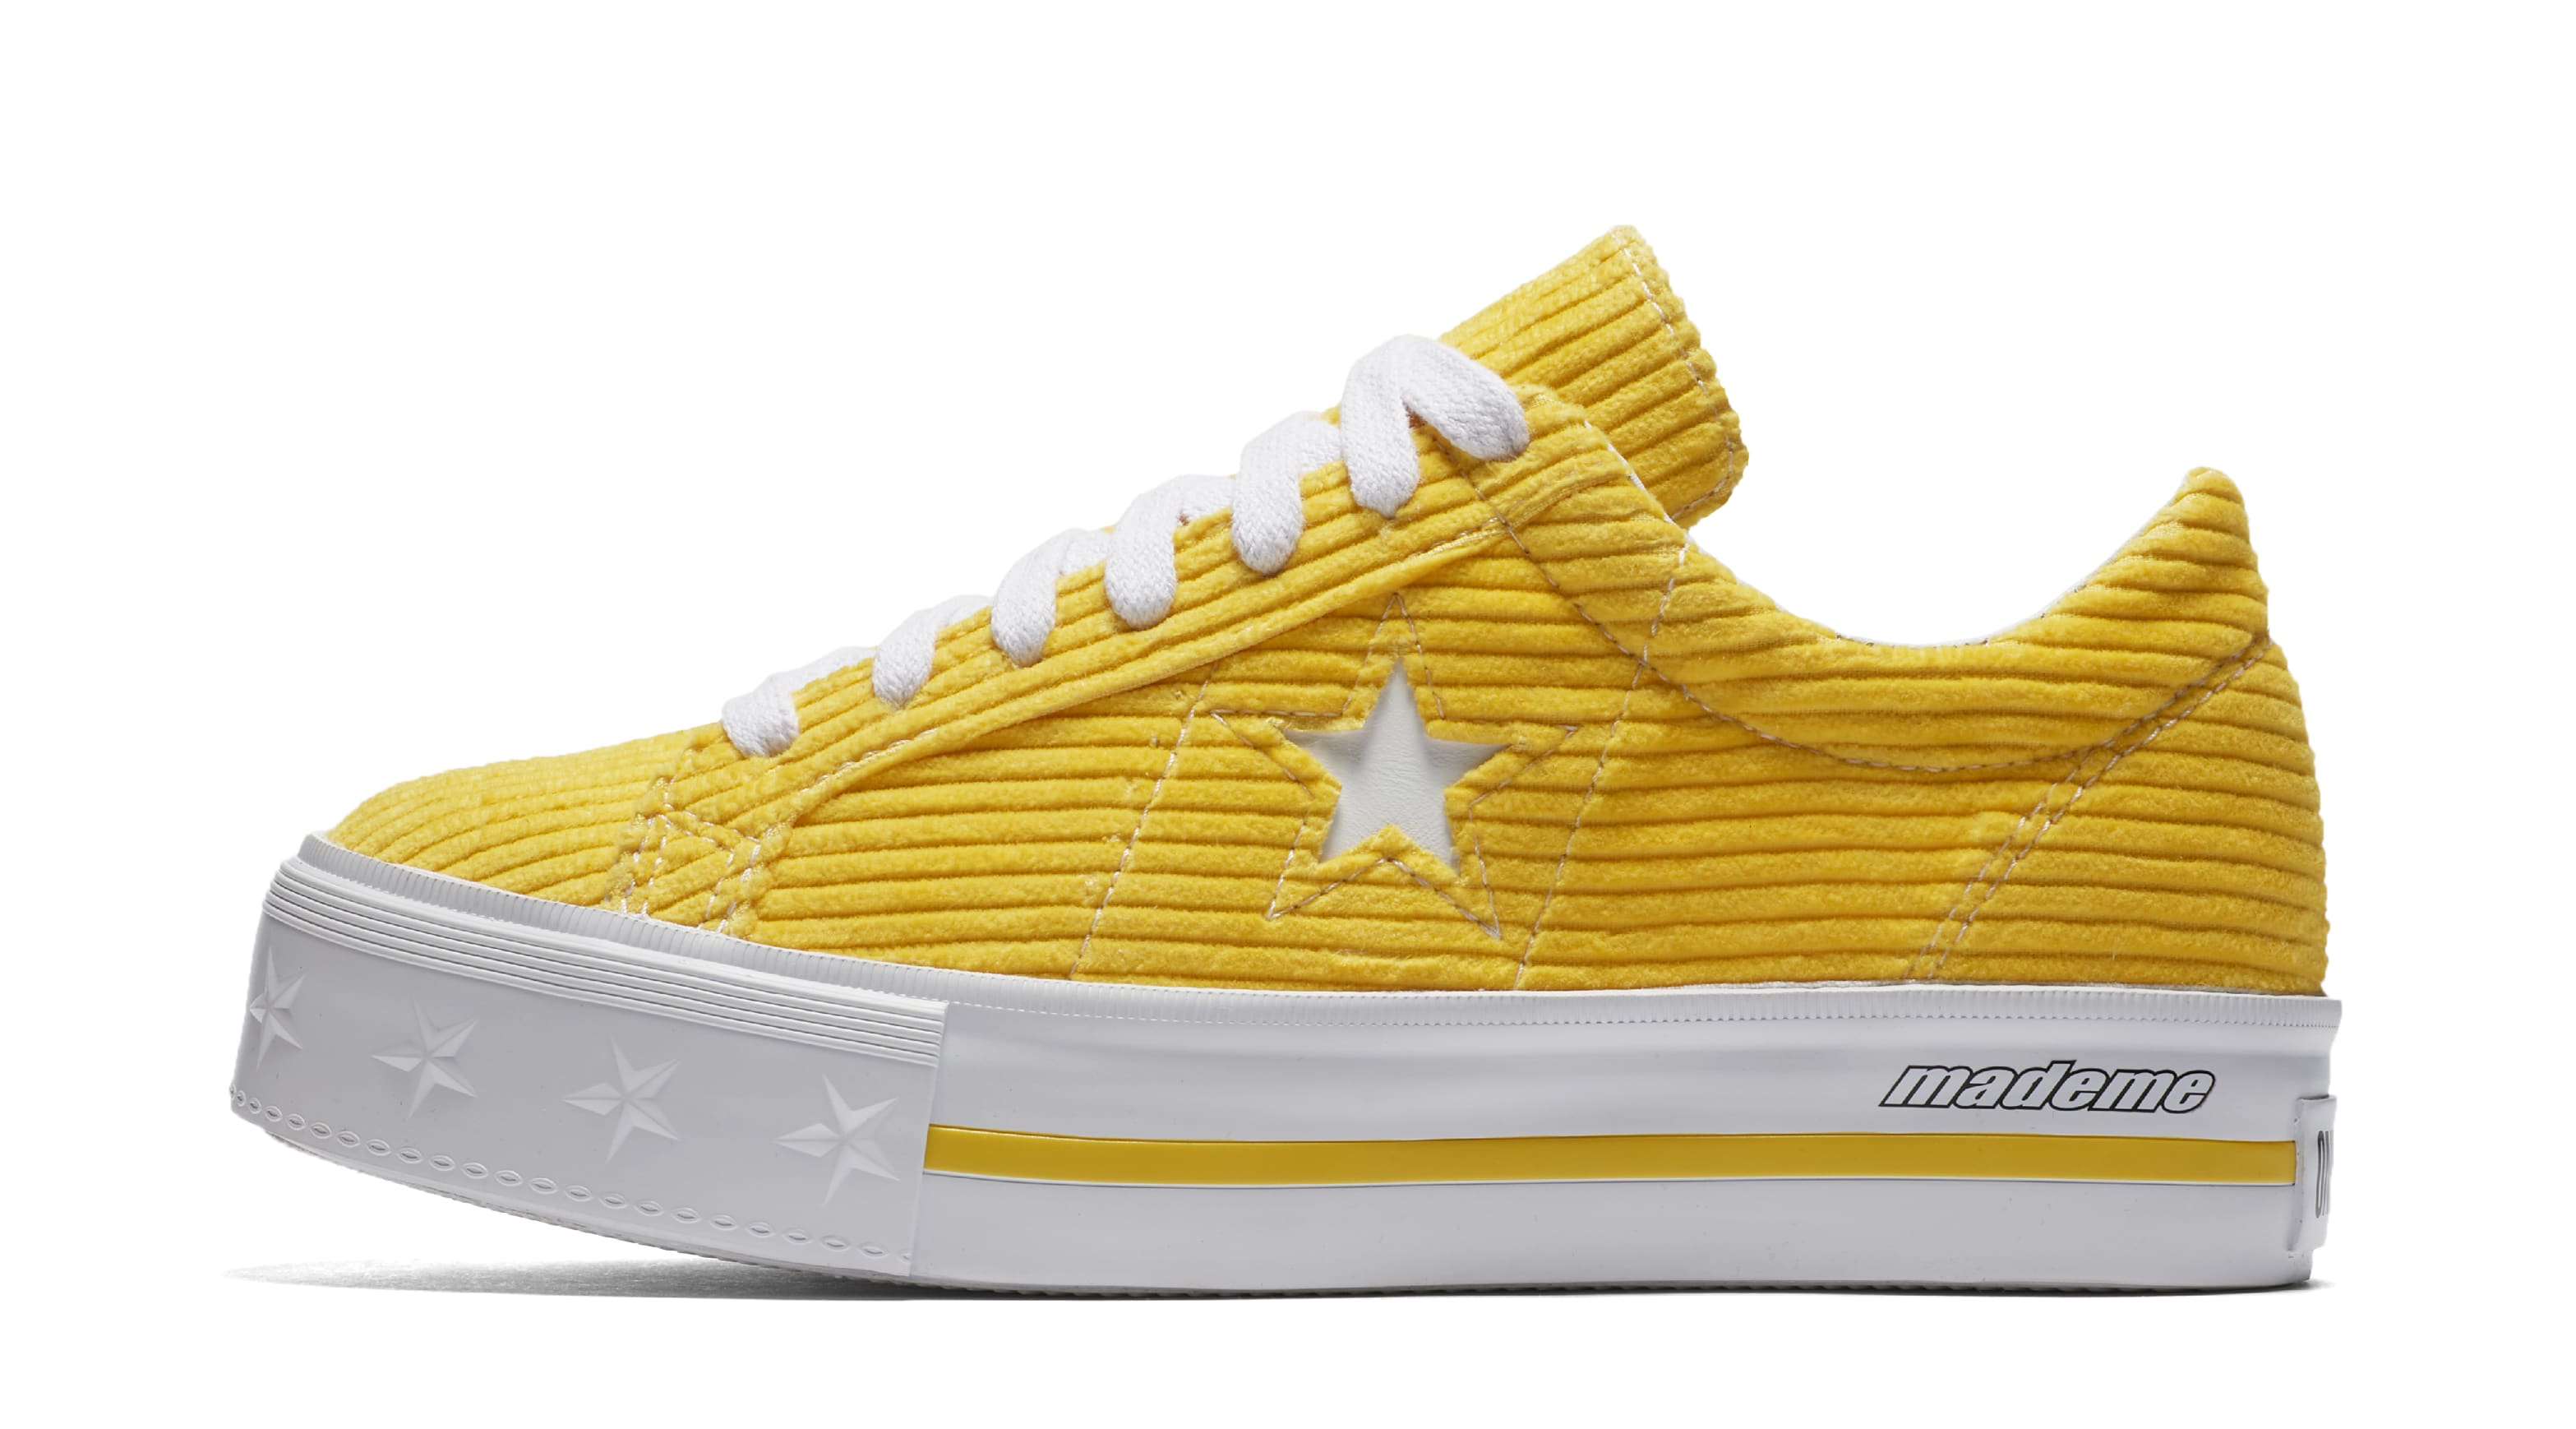 Mademe x Converse One Star 'Vibrant Yellow' (Lateral)